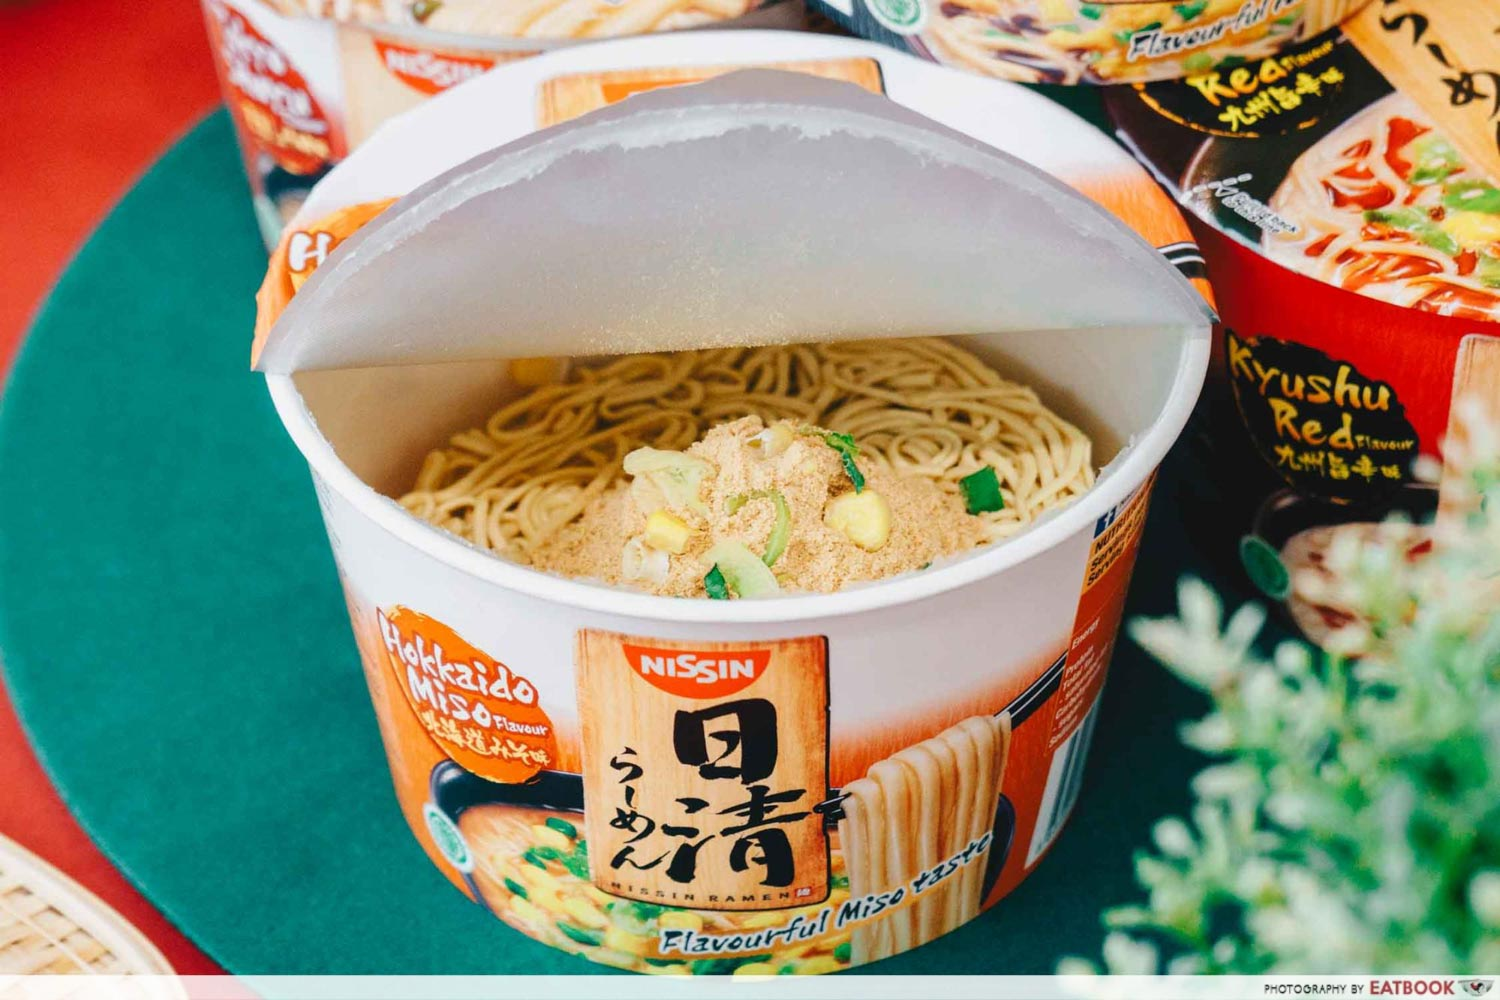 NISSIN RAMEN - Miso toppings